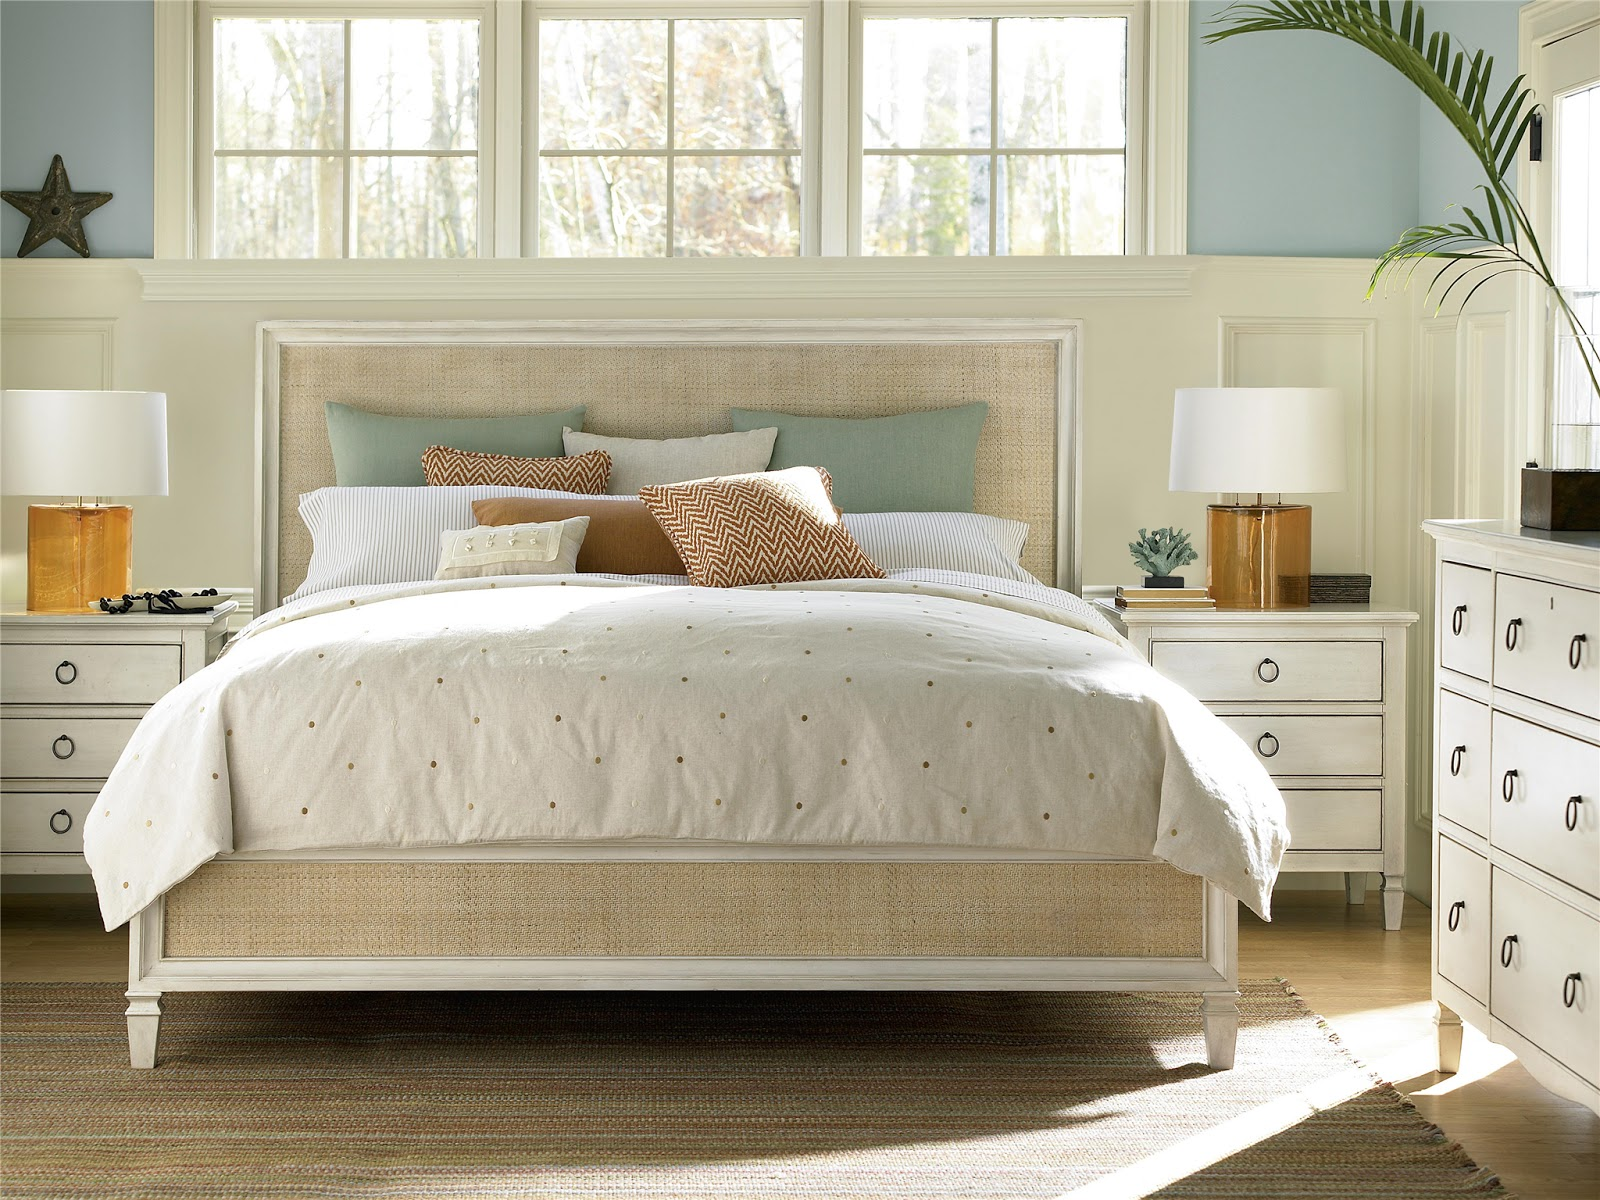 Trend Trend I Love Caned Furniture